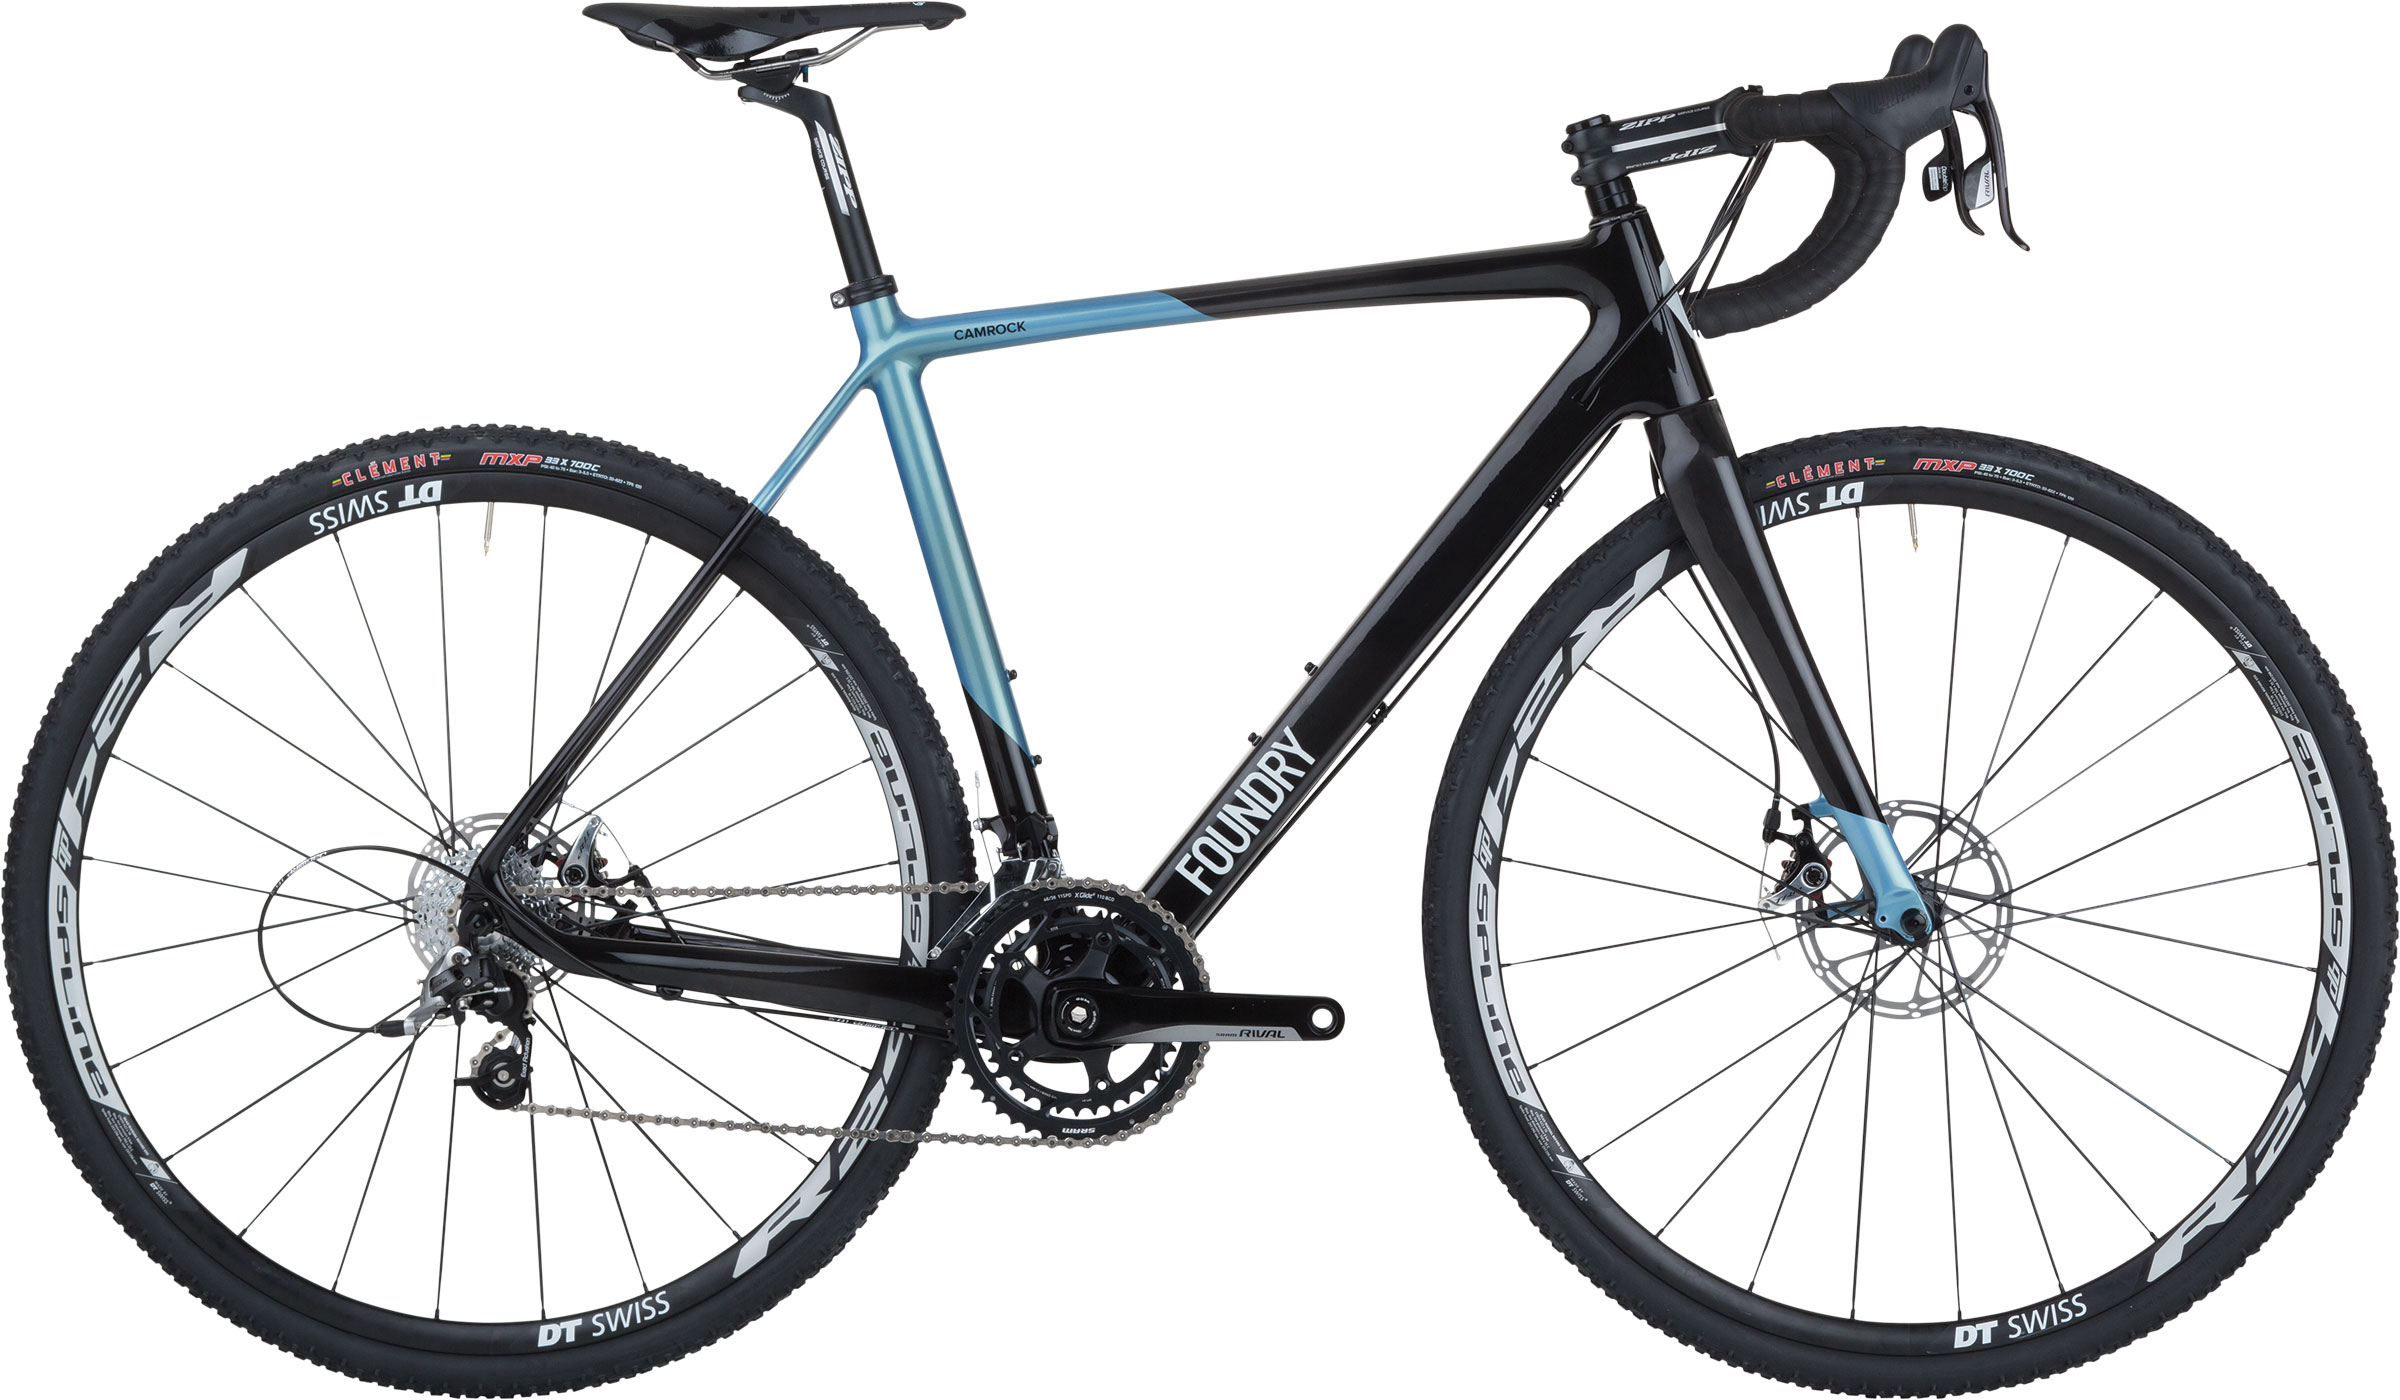 249dc95f291 Foundry Camrock Rival 22 - Grand Rapids Bicycle Co. - Grand Rapids ...